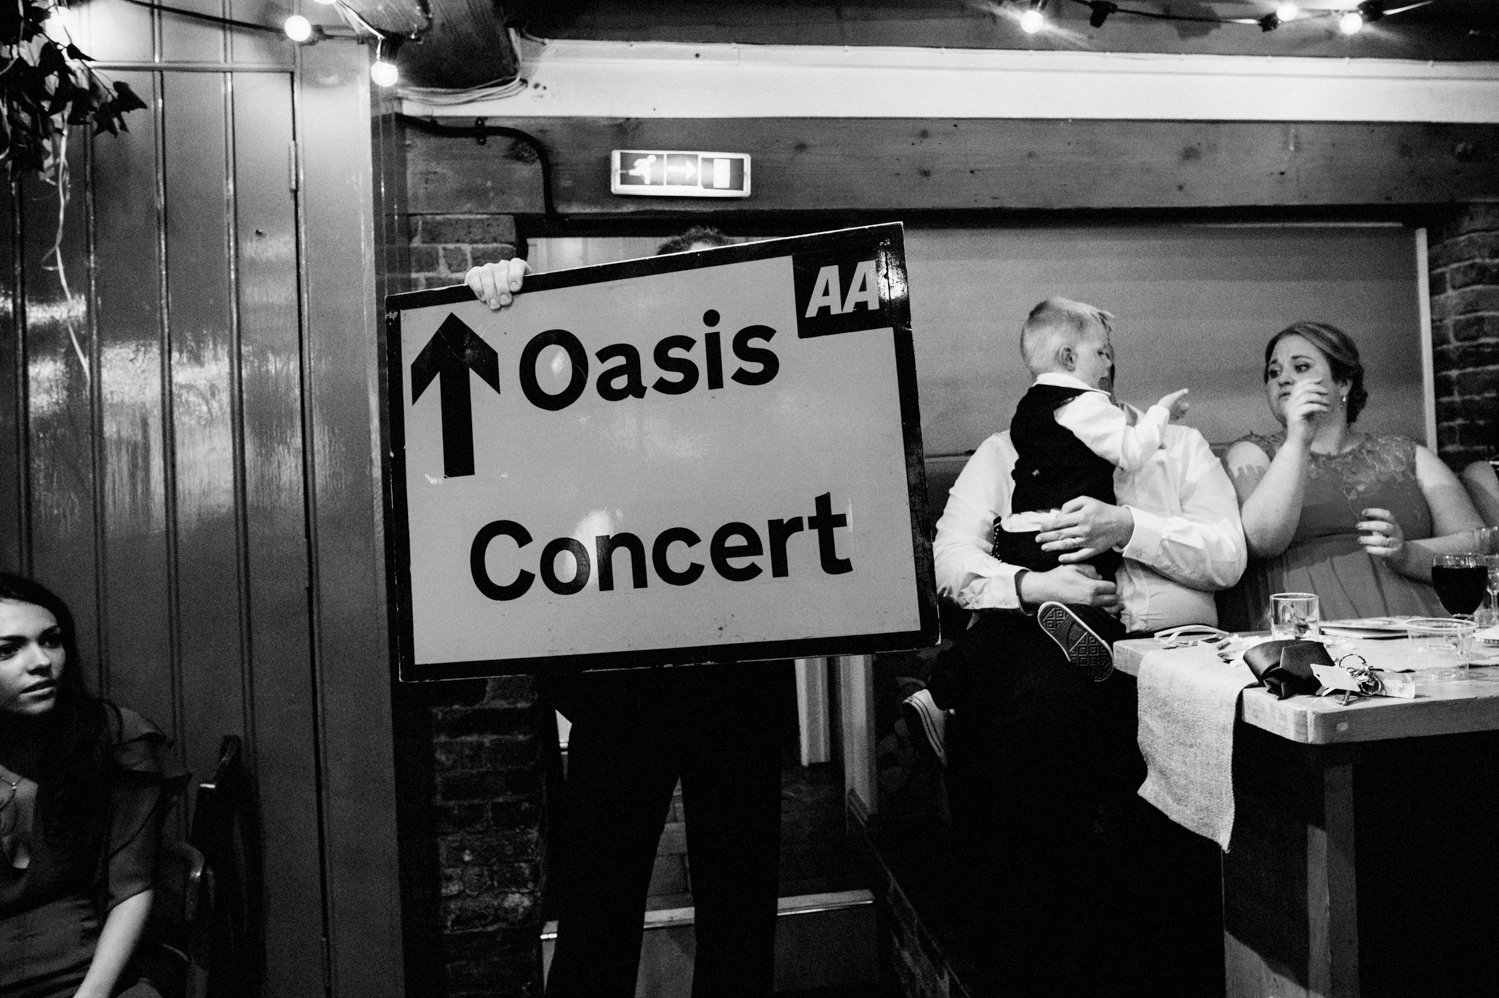 Oasis concert sign Whitstable wedding